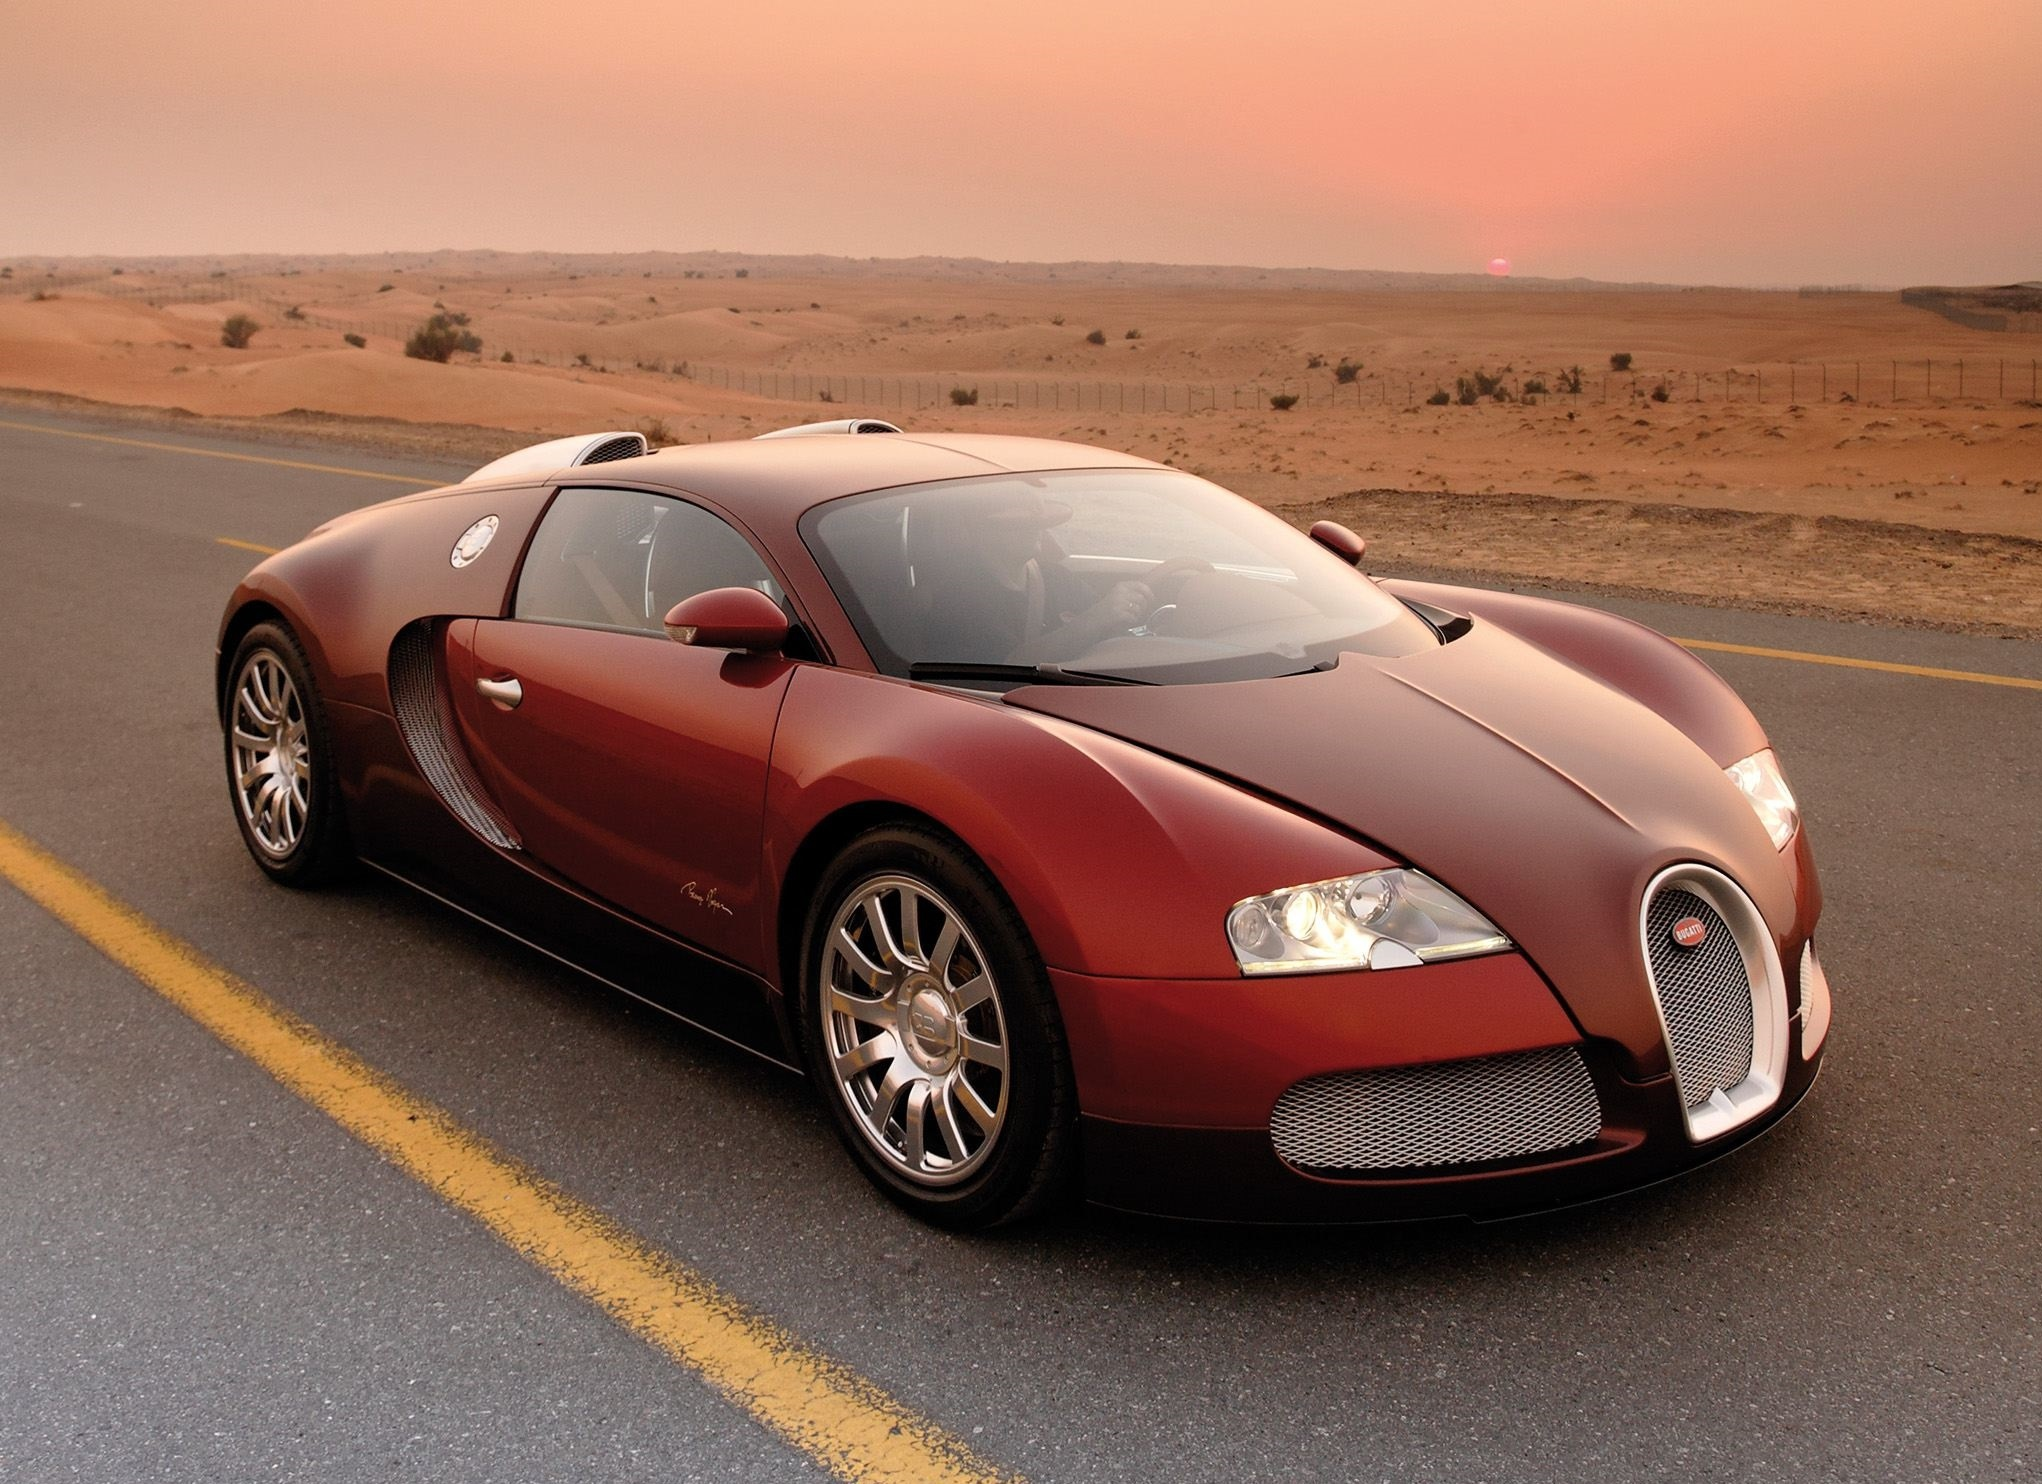 Bugatti veyron wallpapers images photos pictures backgrounds - Bugatti veyron photos wallpapers ...